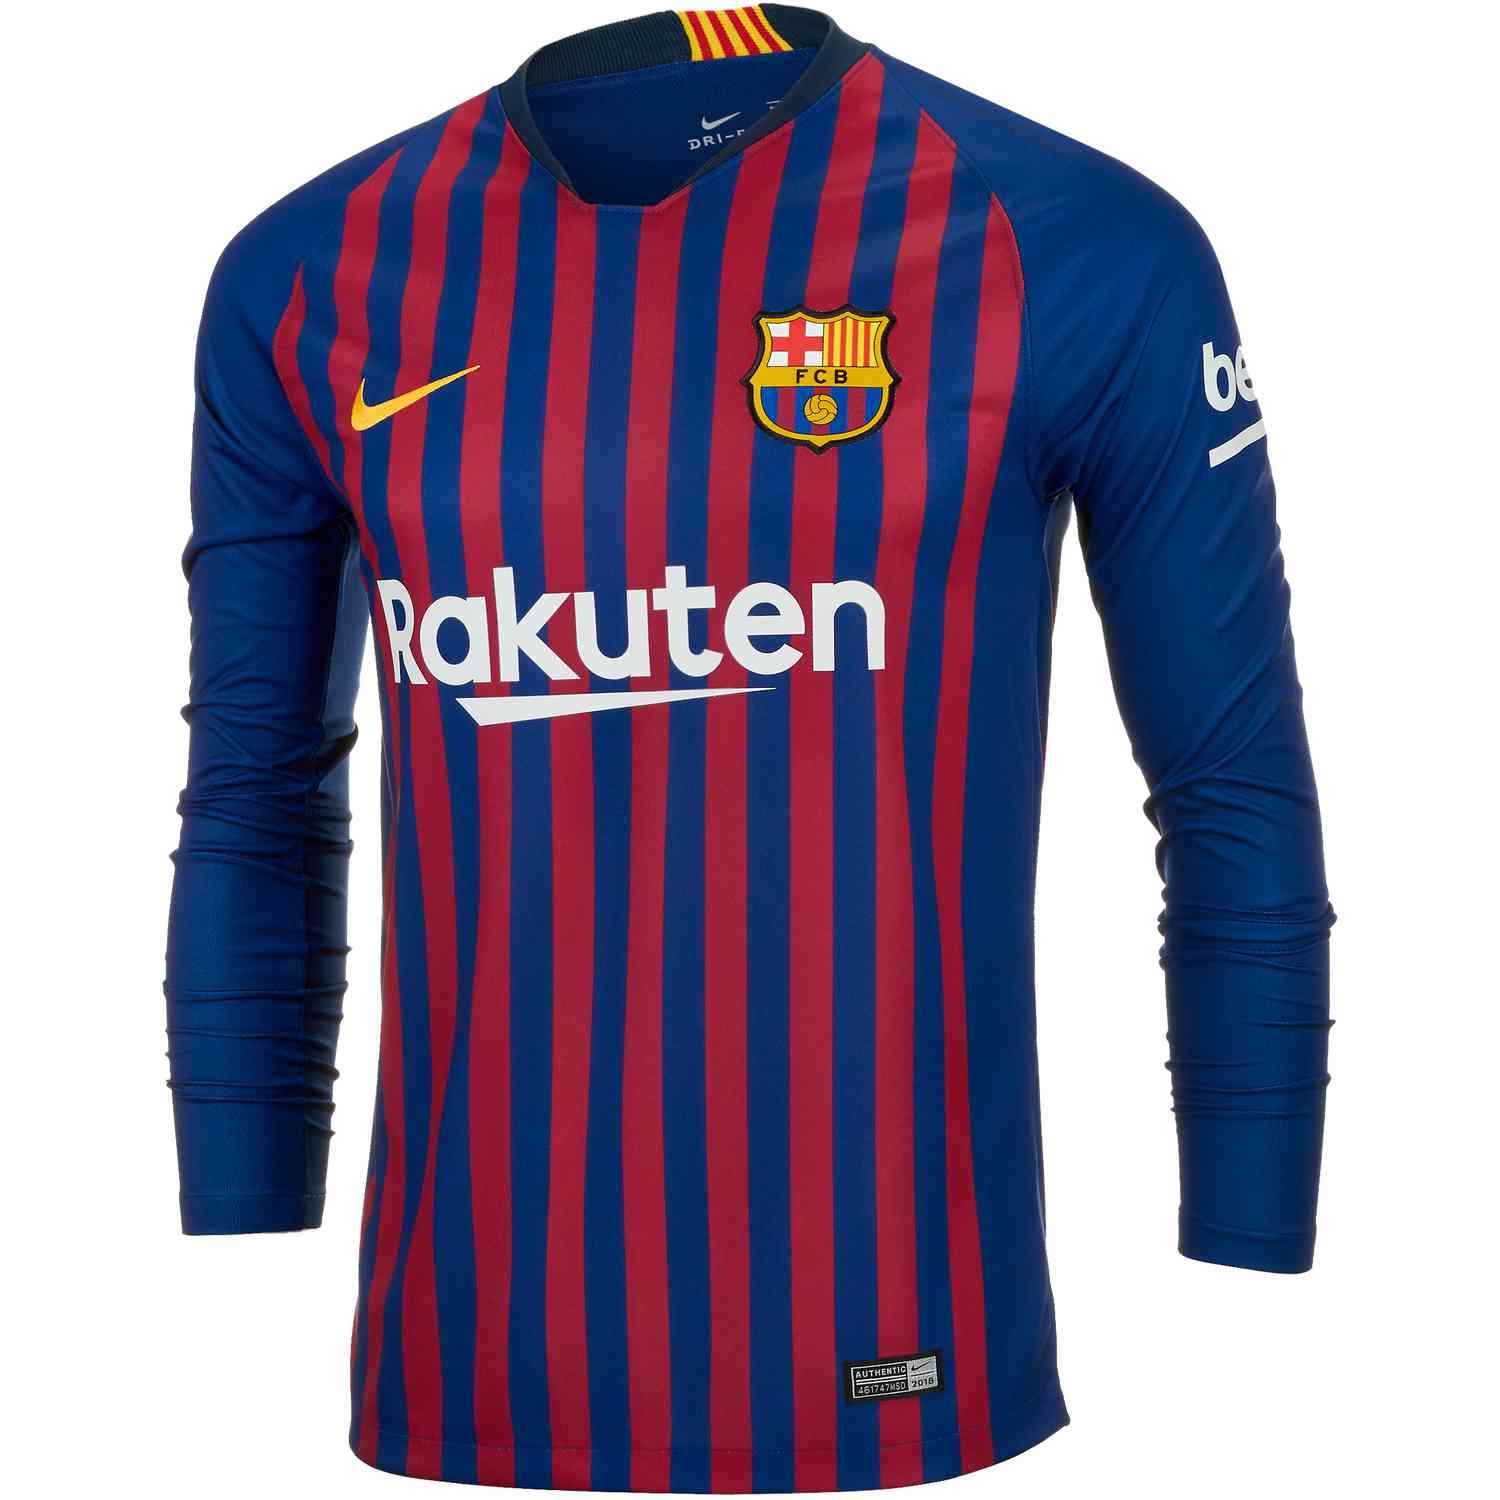 low priced e269d c2d6f 2018/19 Nike Barcelona Home L/S Jersey